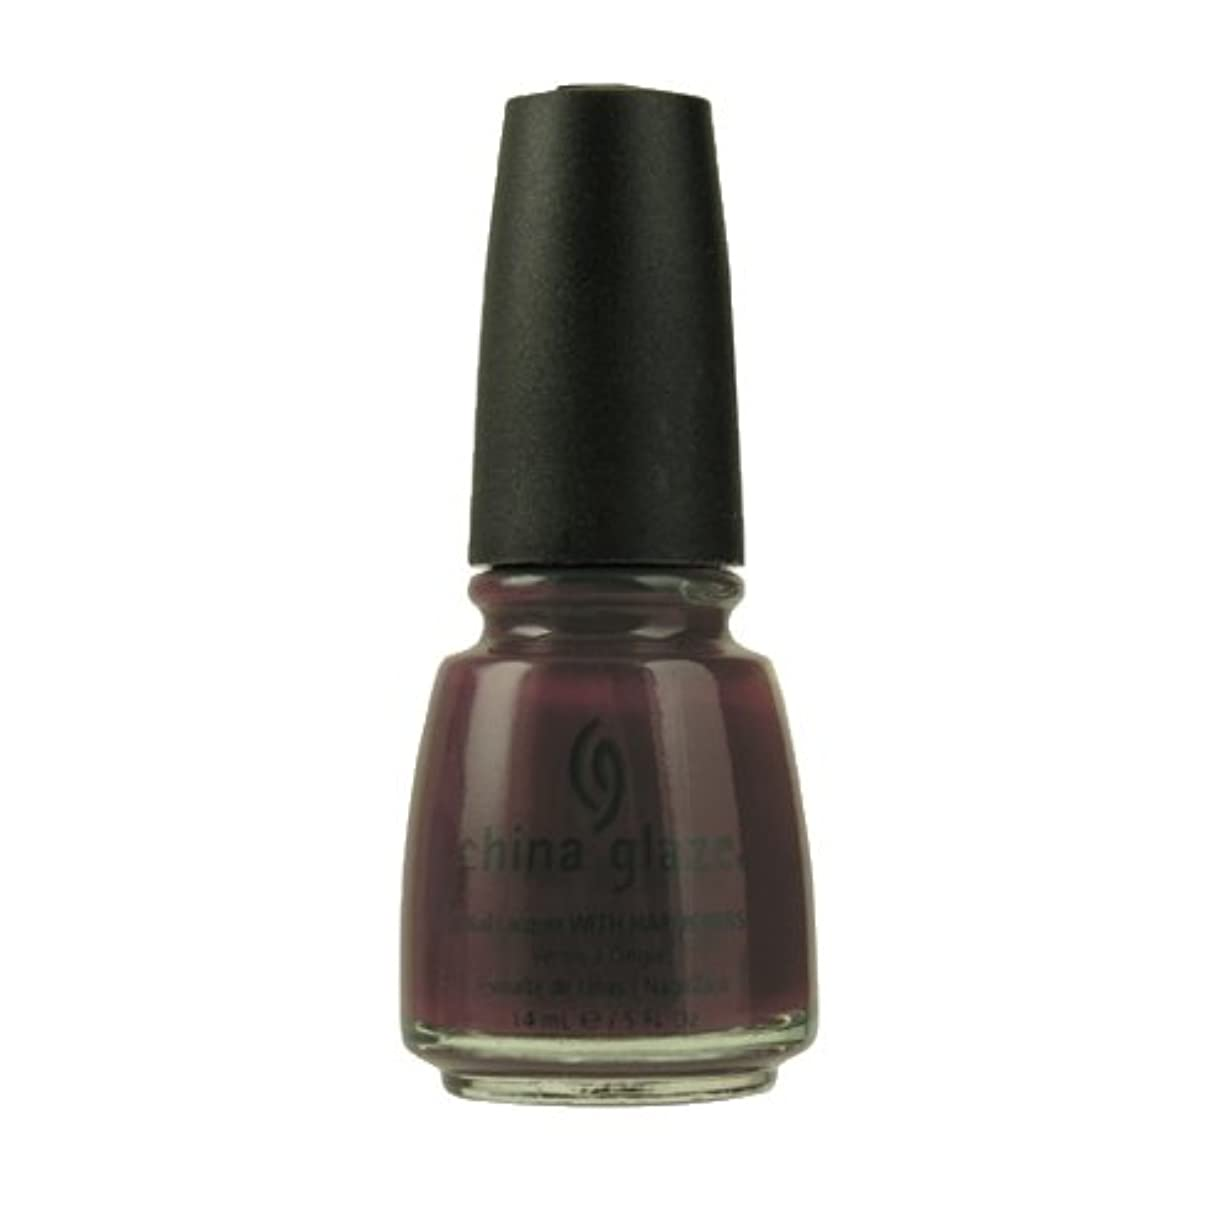 添加剤ために地下室(6 Pack) CHINA GLAZE Nail Lacquer with Nail Hardner - VIII (並行輸入品)